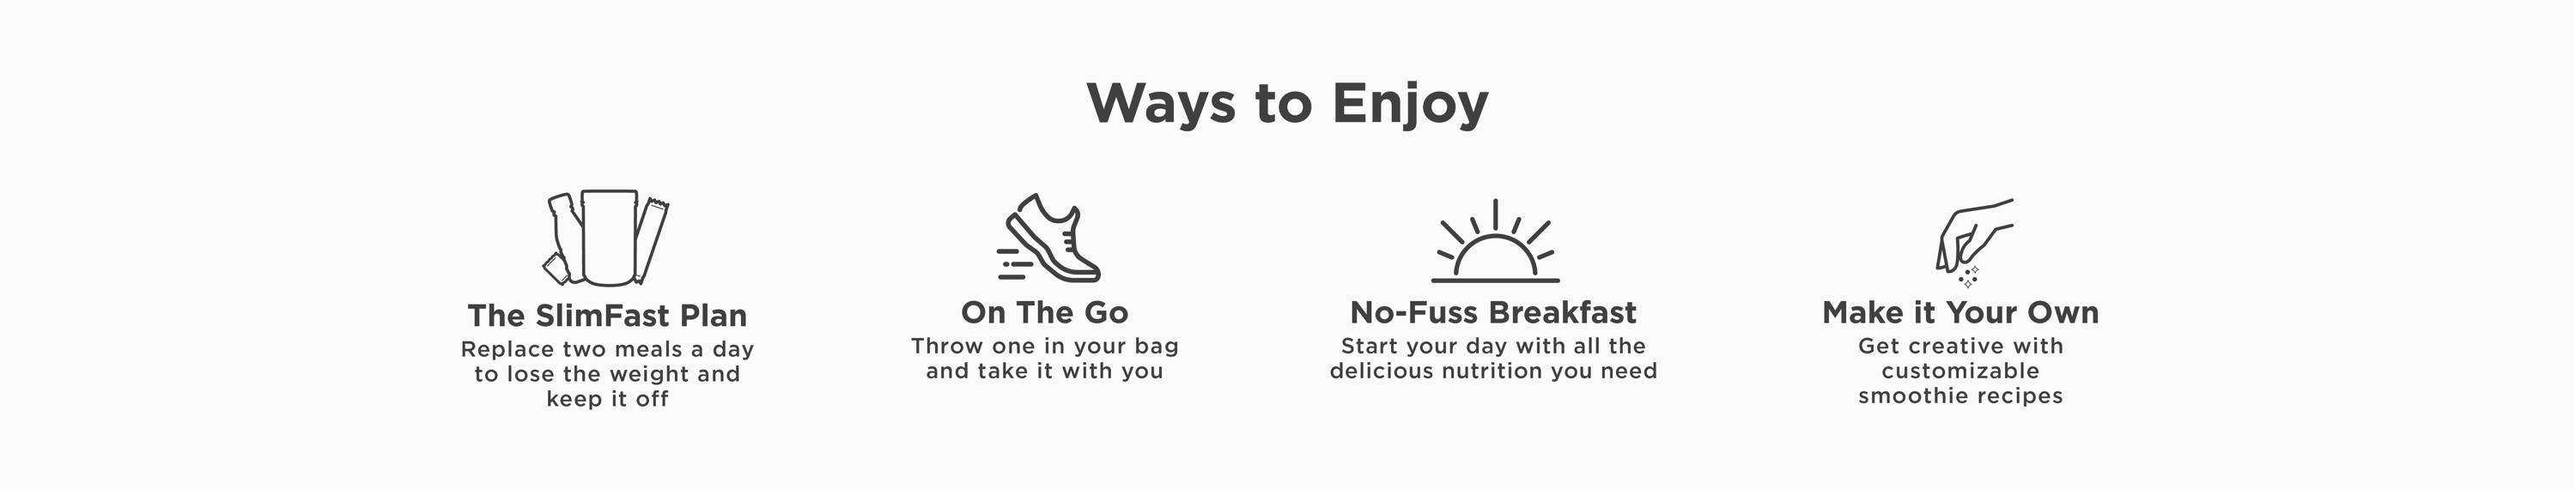 Ways to enjoy Keto Shakes Mixes: Use it on the SlimFast plan, take them on the go, have a no-fuss breakfast, or make it your own